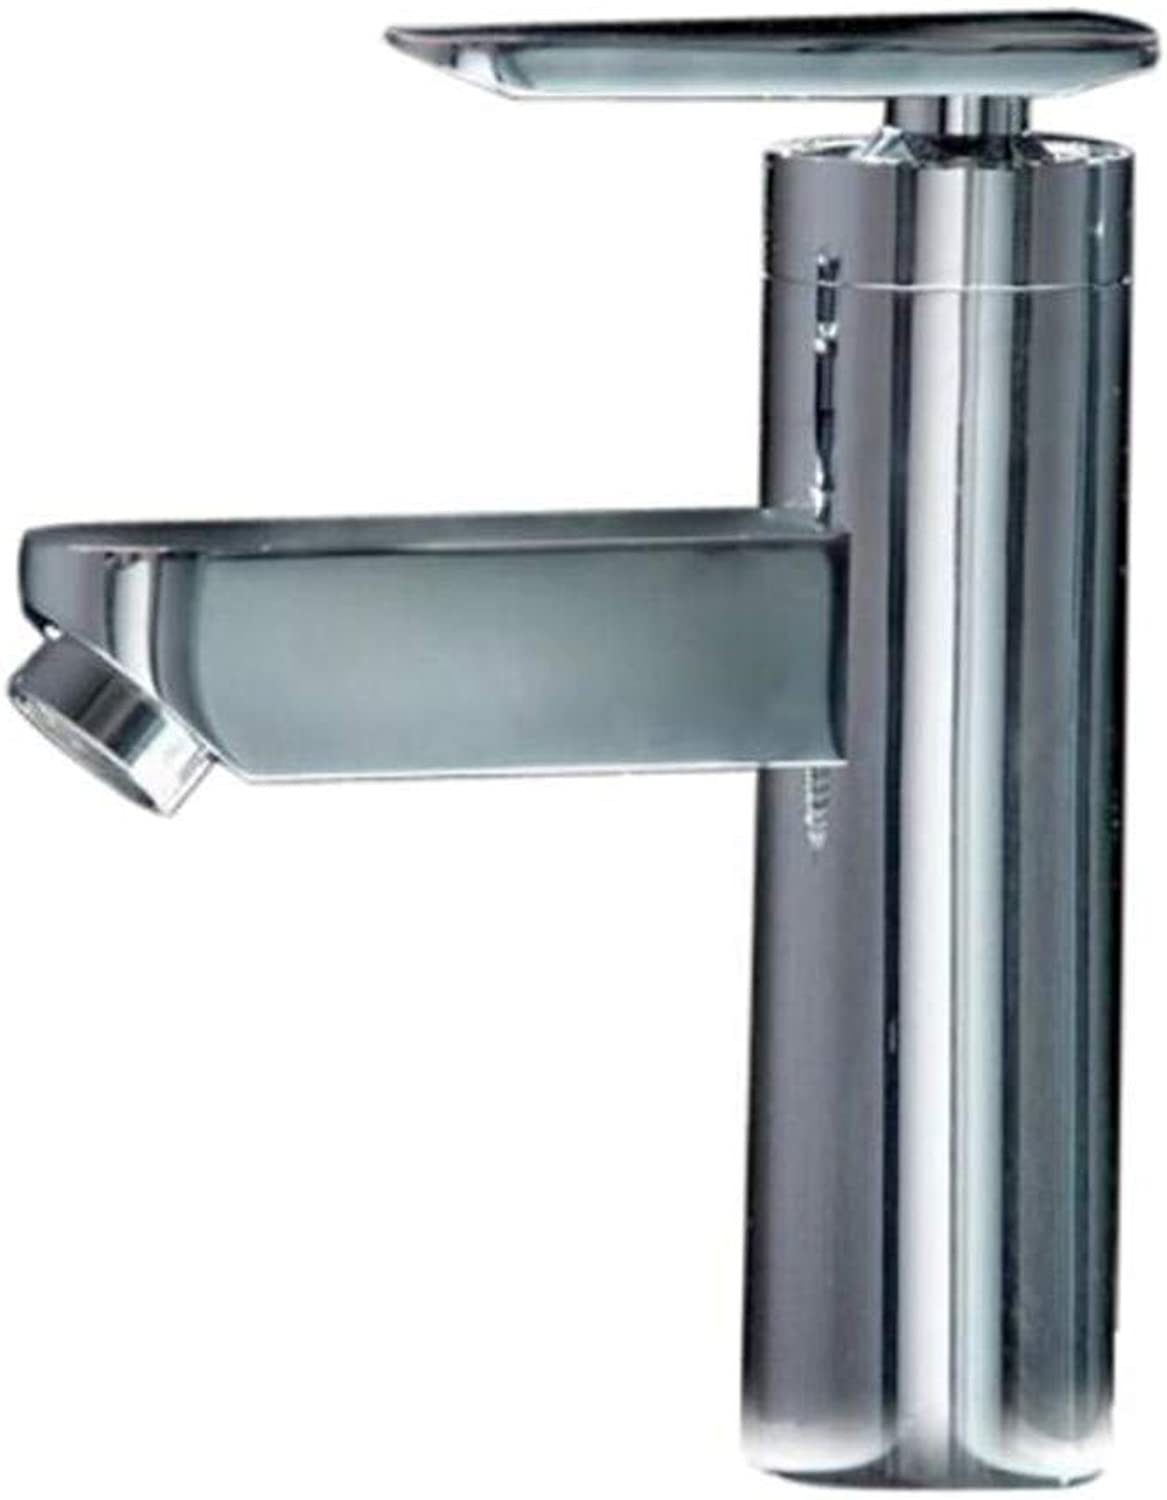 Taps Mixer?Swivel?Faucet Sink Bathroom Single Handle Single Hole Basin Bathroom Cabinet Hot and Cold Water Faucet Single Faucet